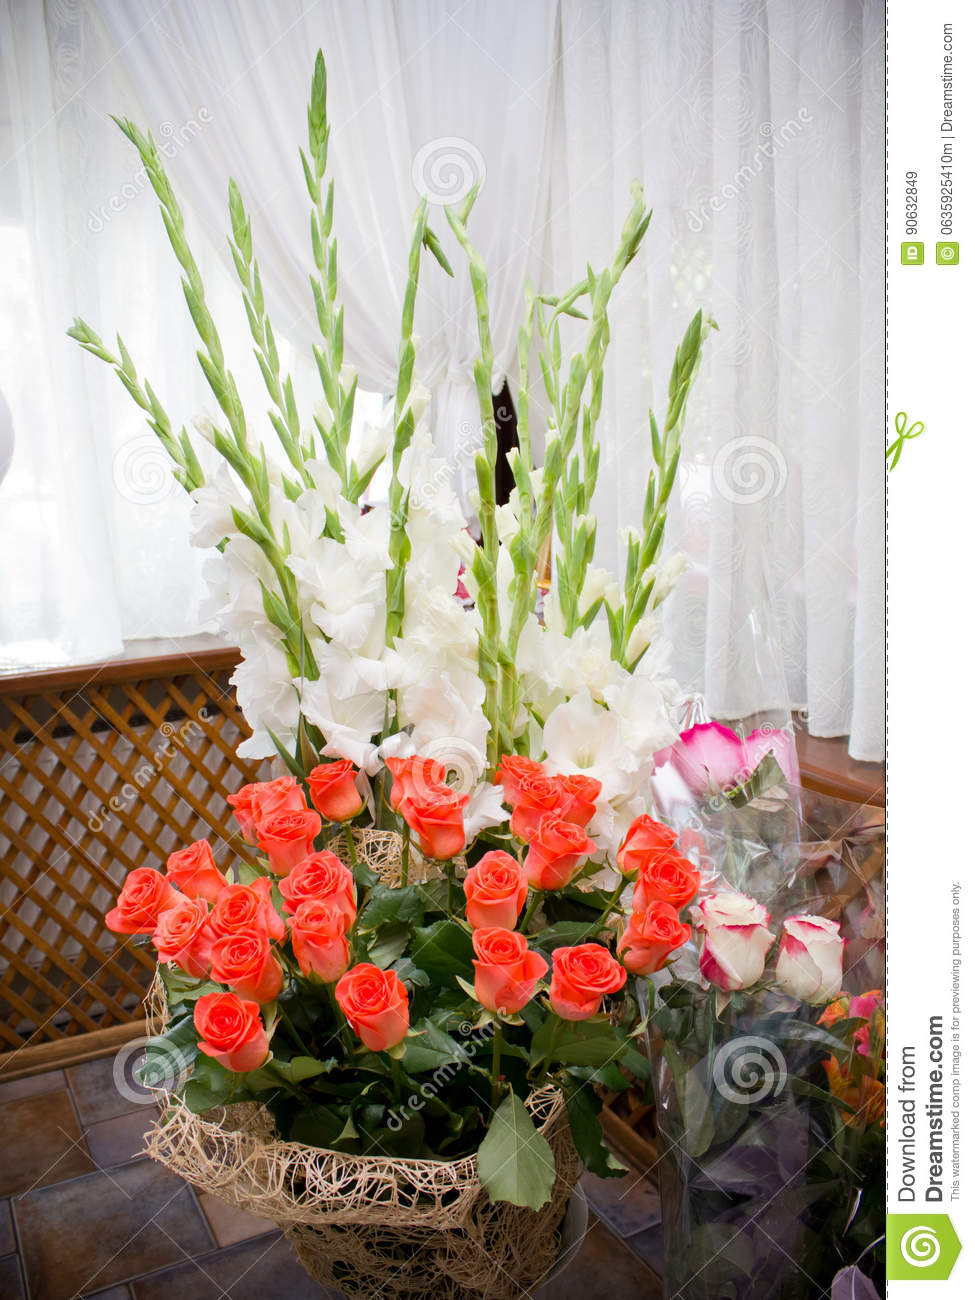 Huge Bouquets Of Flowers Stock Photo - Image: 90632849